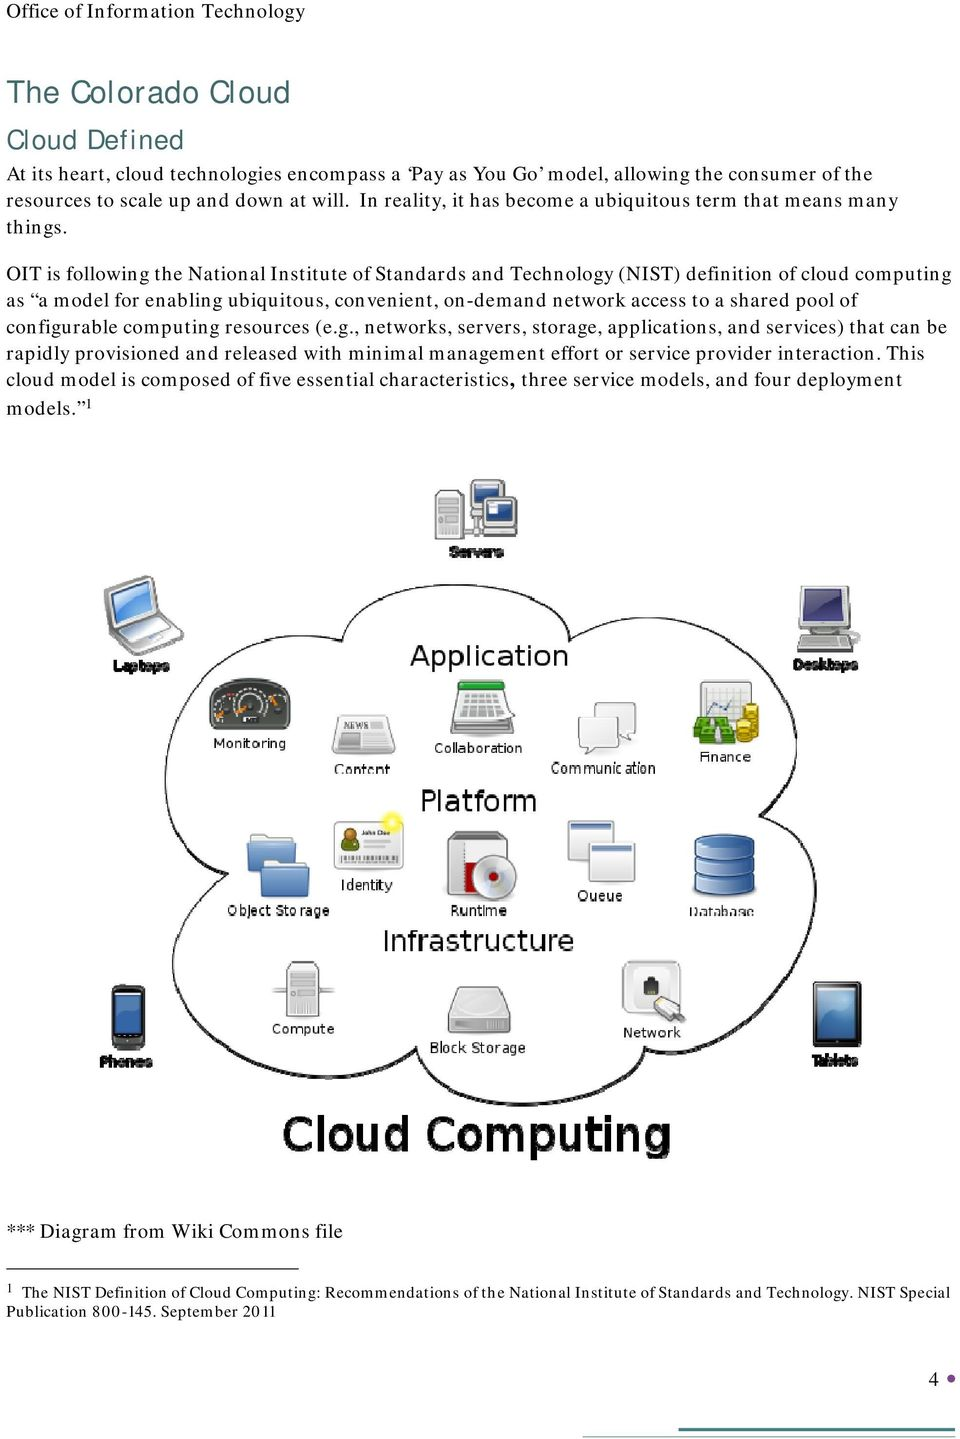 OIT is following the National Institute of Standards and Technology (NIST) definition of cloud computing as a model for enabling ubiquitous, convenient, on-demand network access to a shared pool of